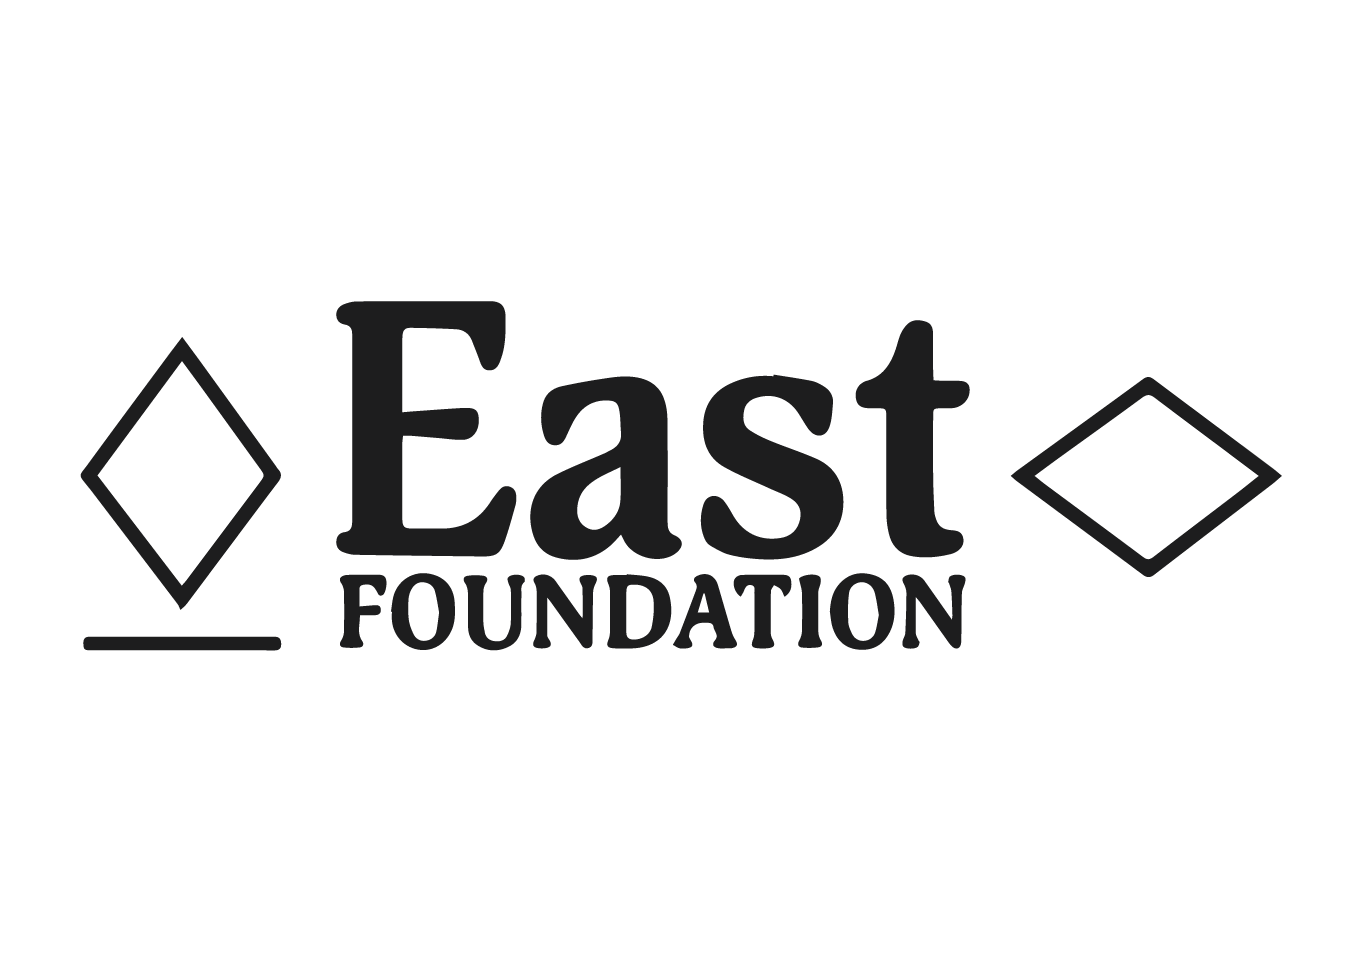 East Foundation